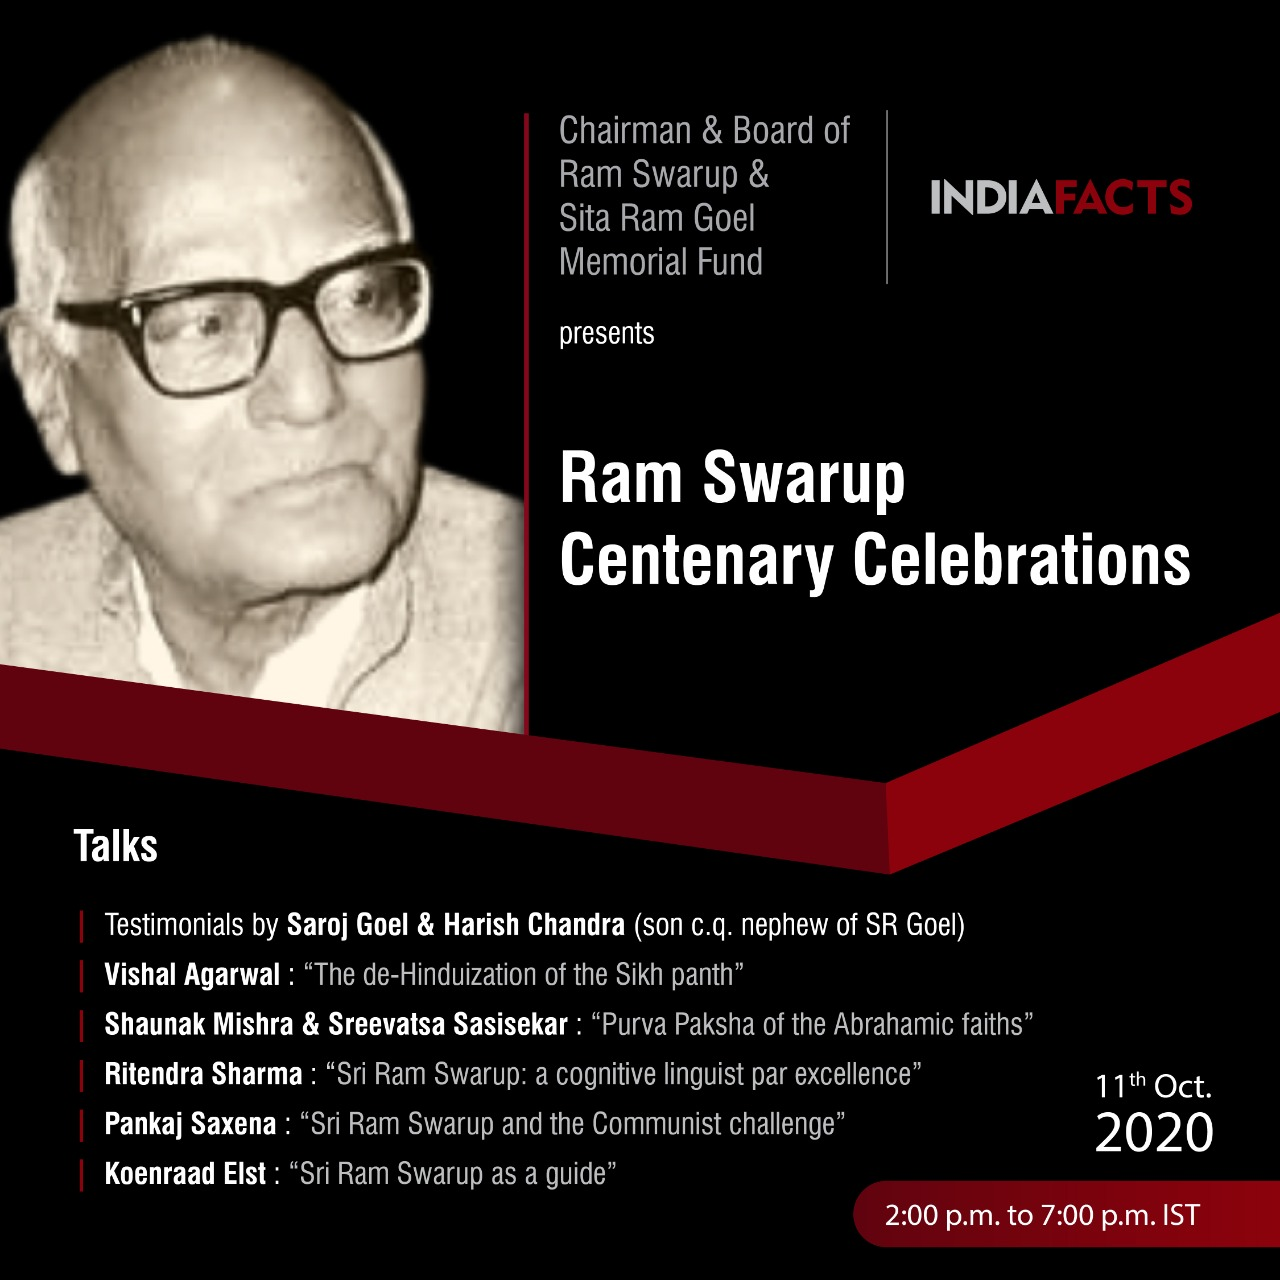 Ram Swarup Centenary Celebrations